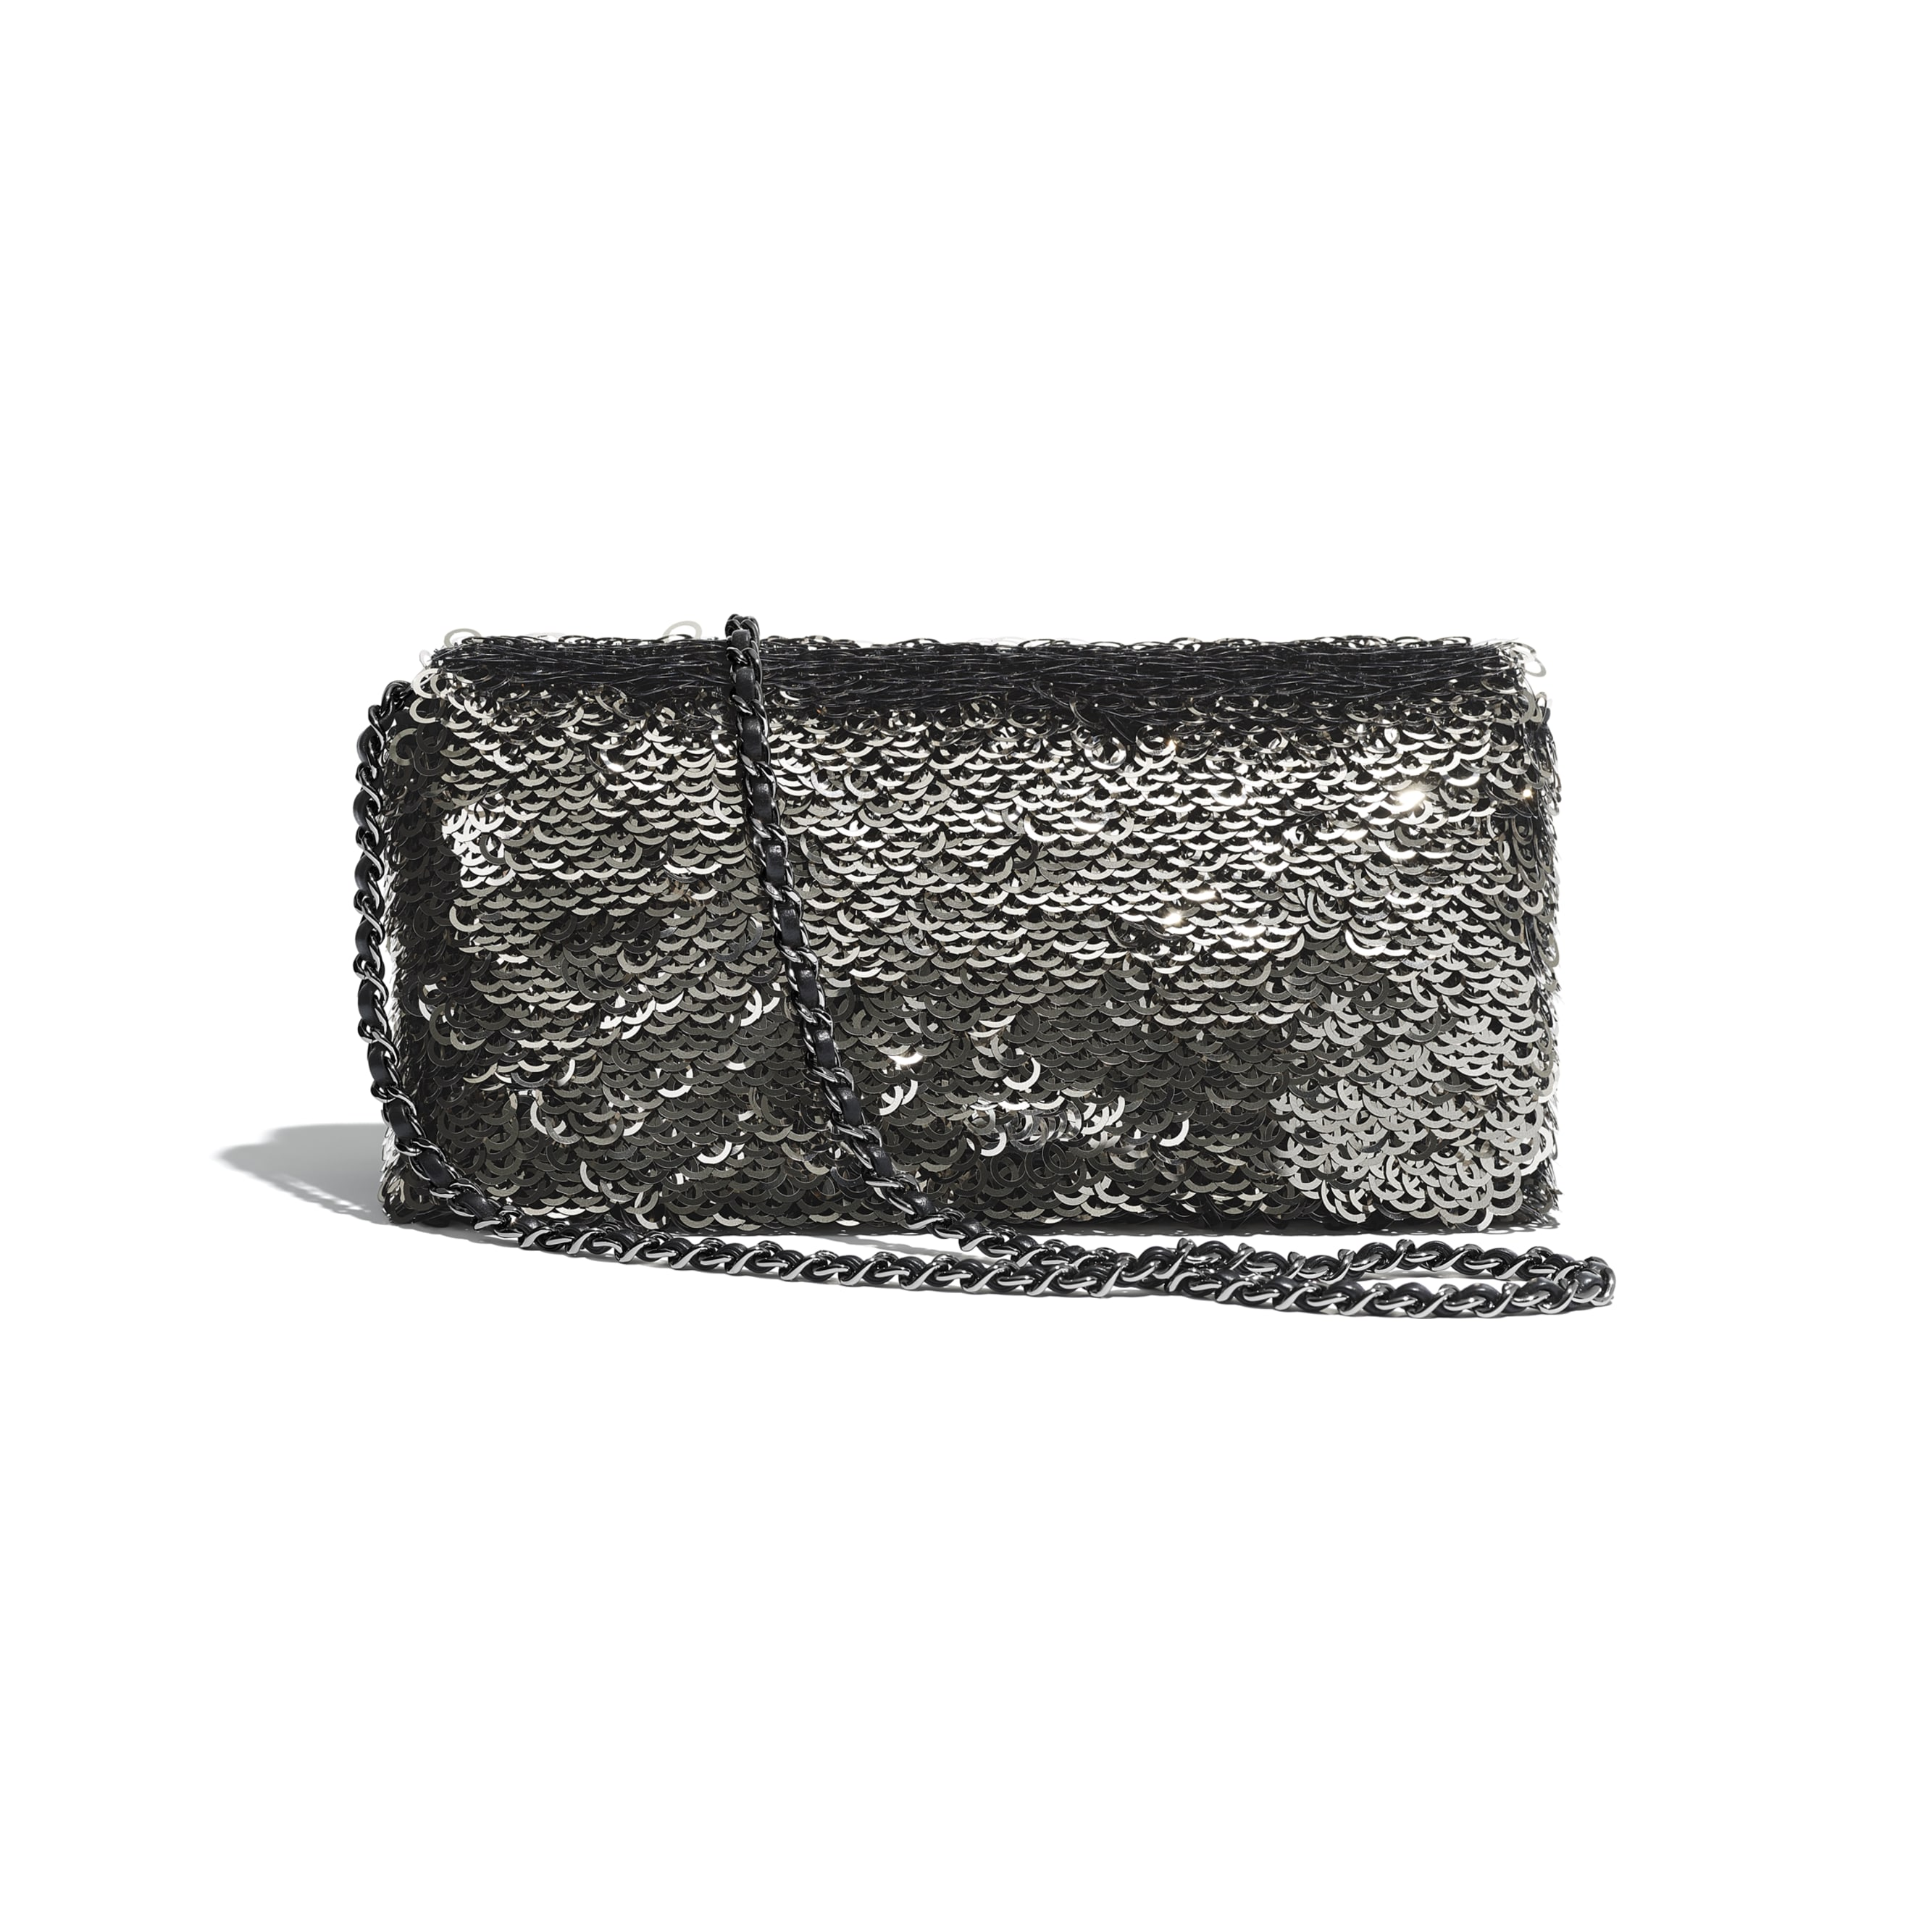 Flap Bag - Black, Silver & White - Sequins & Ruthenium-Finish Metal - Alternative view - see standard sized version